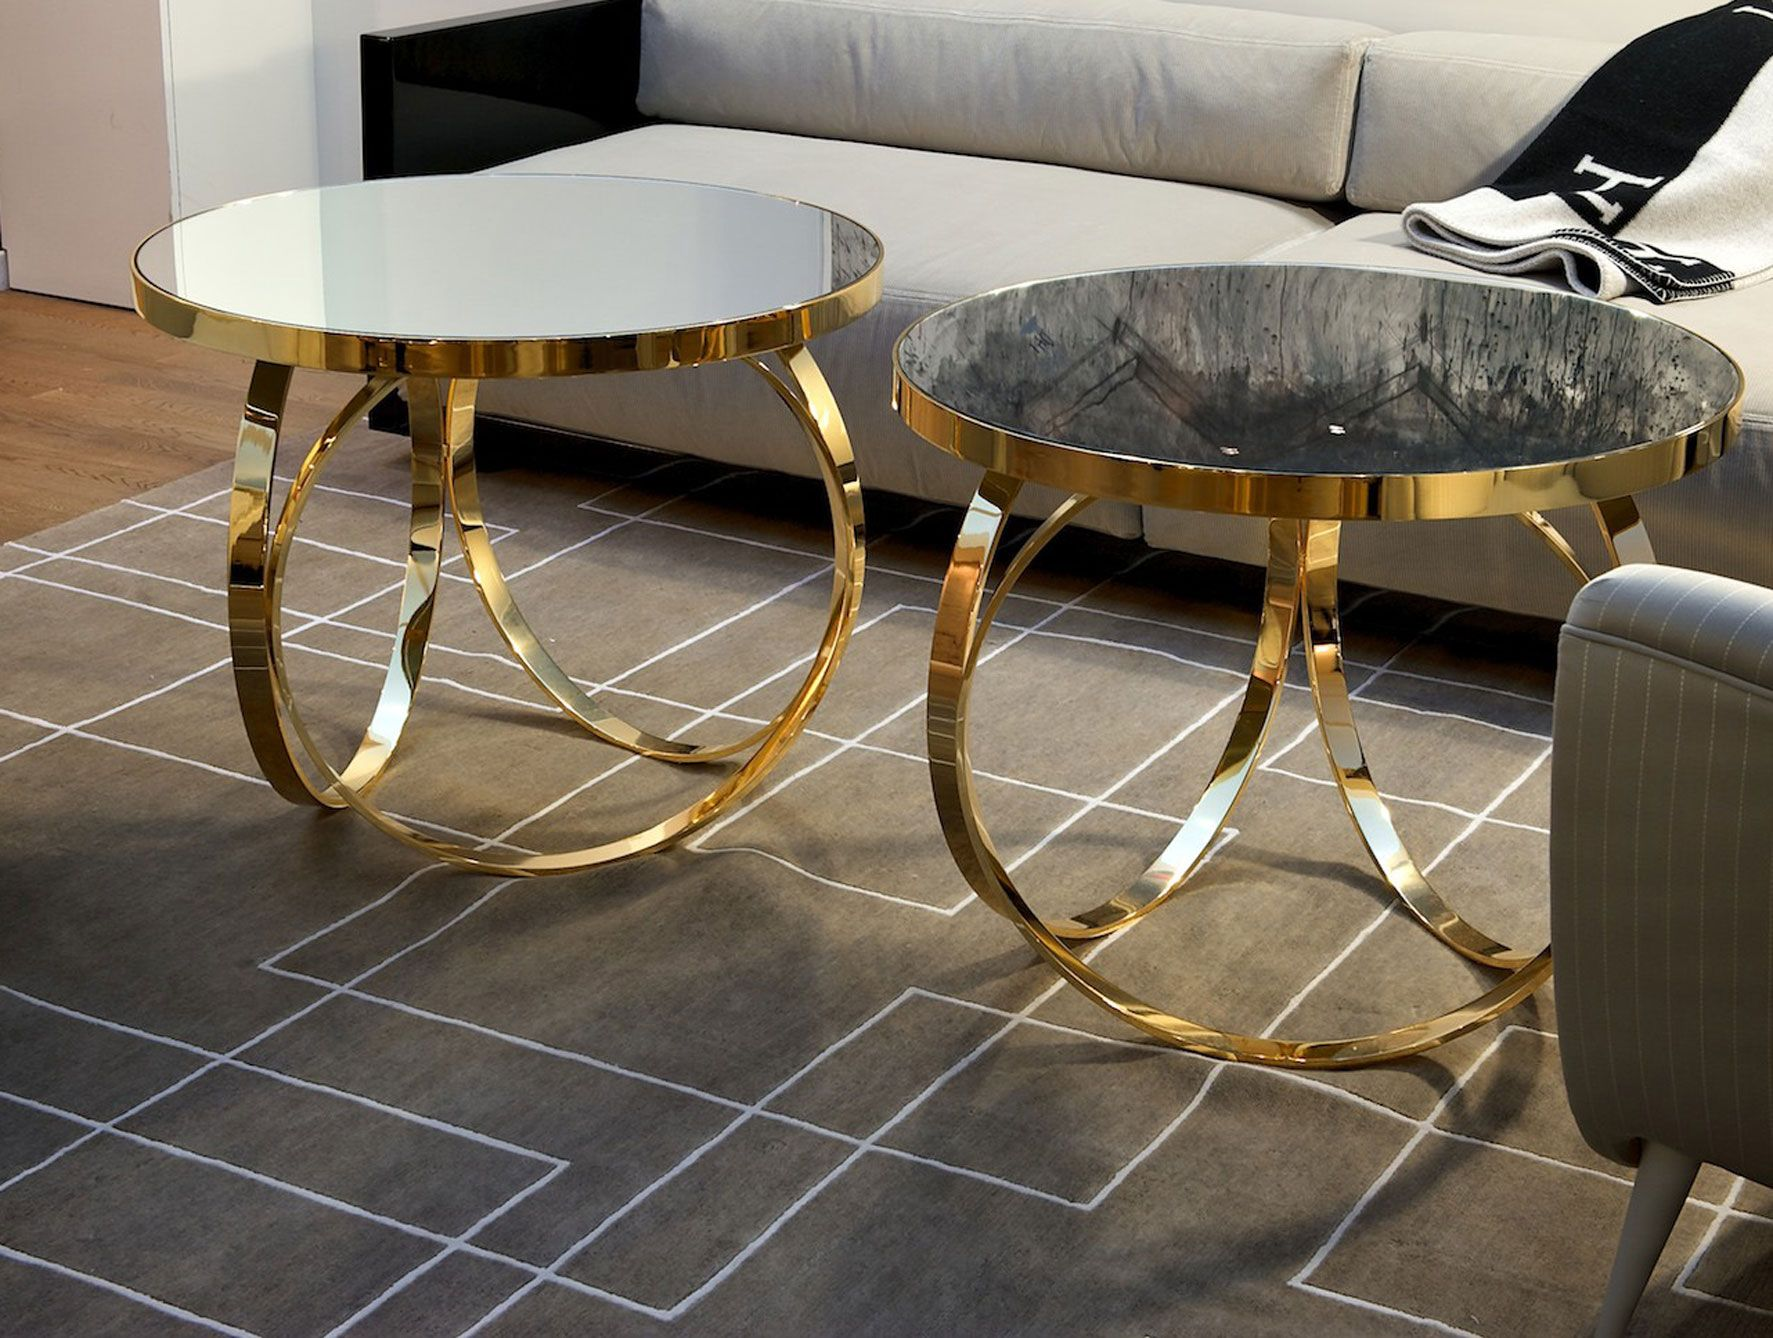 Ottoline Contemporary Italian table shown in glass top with gold